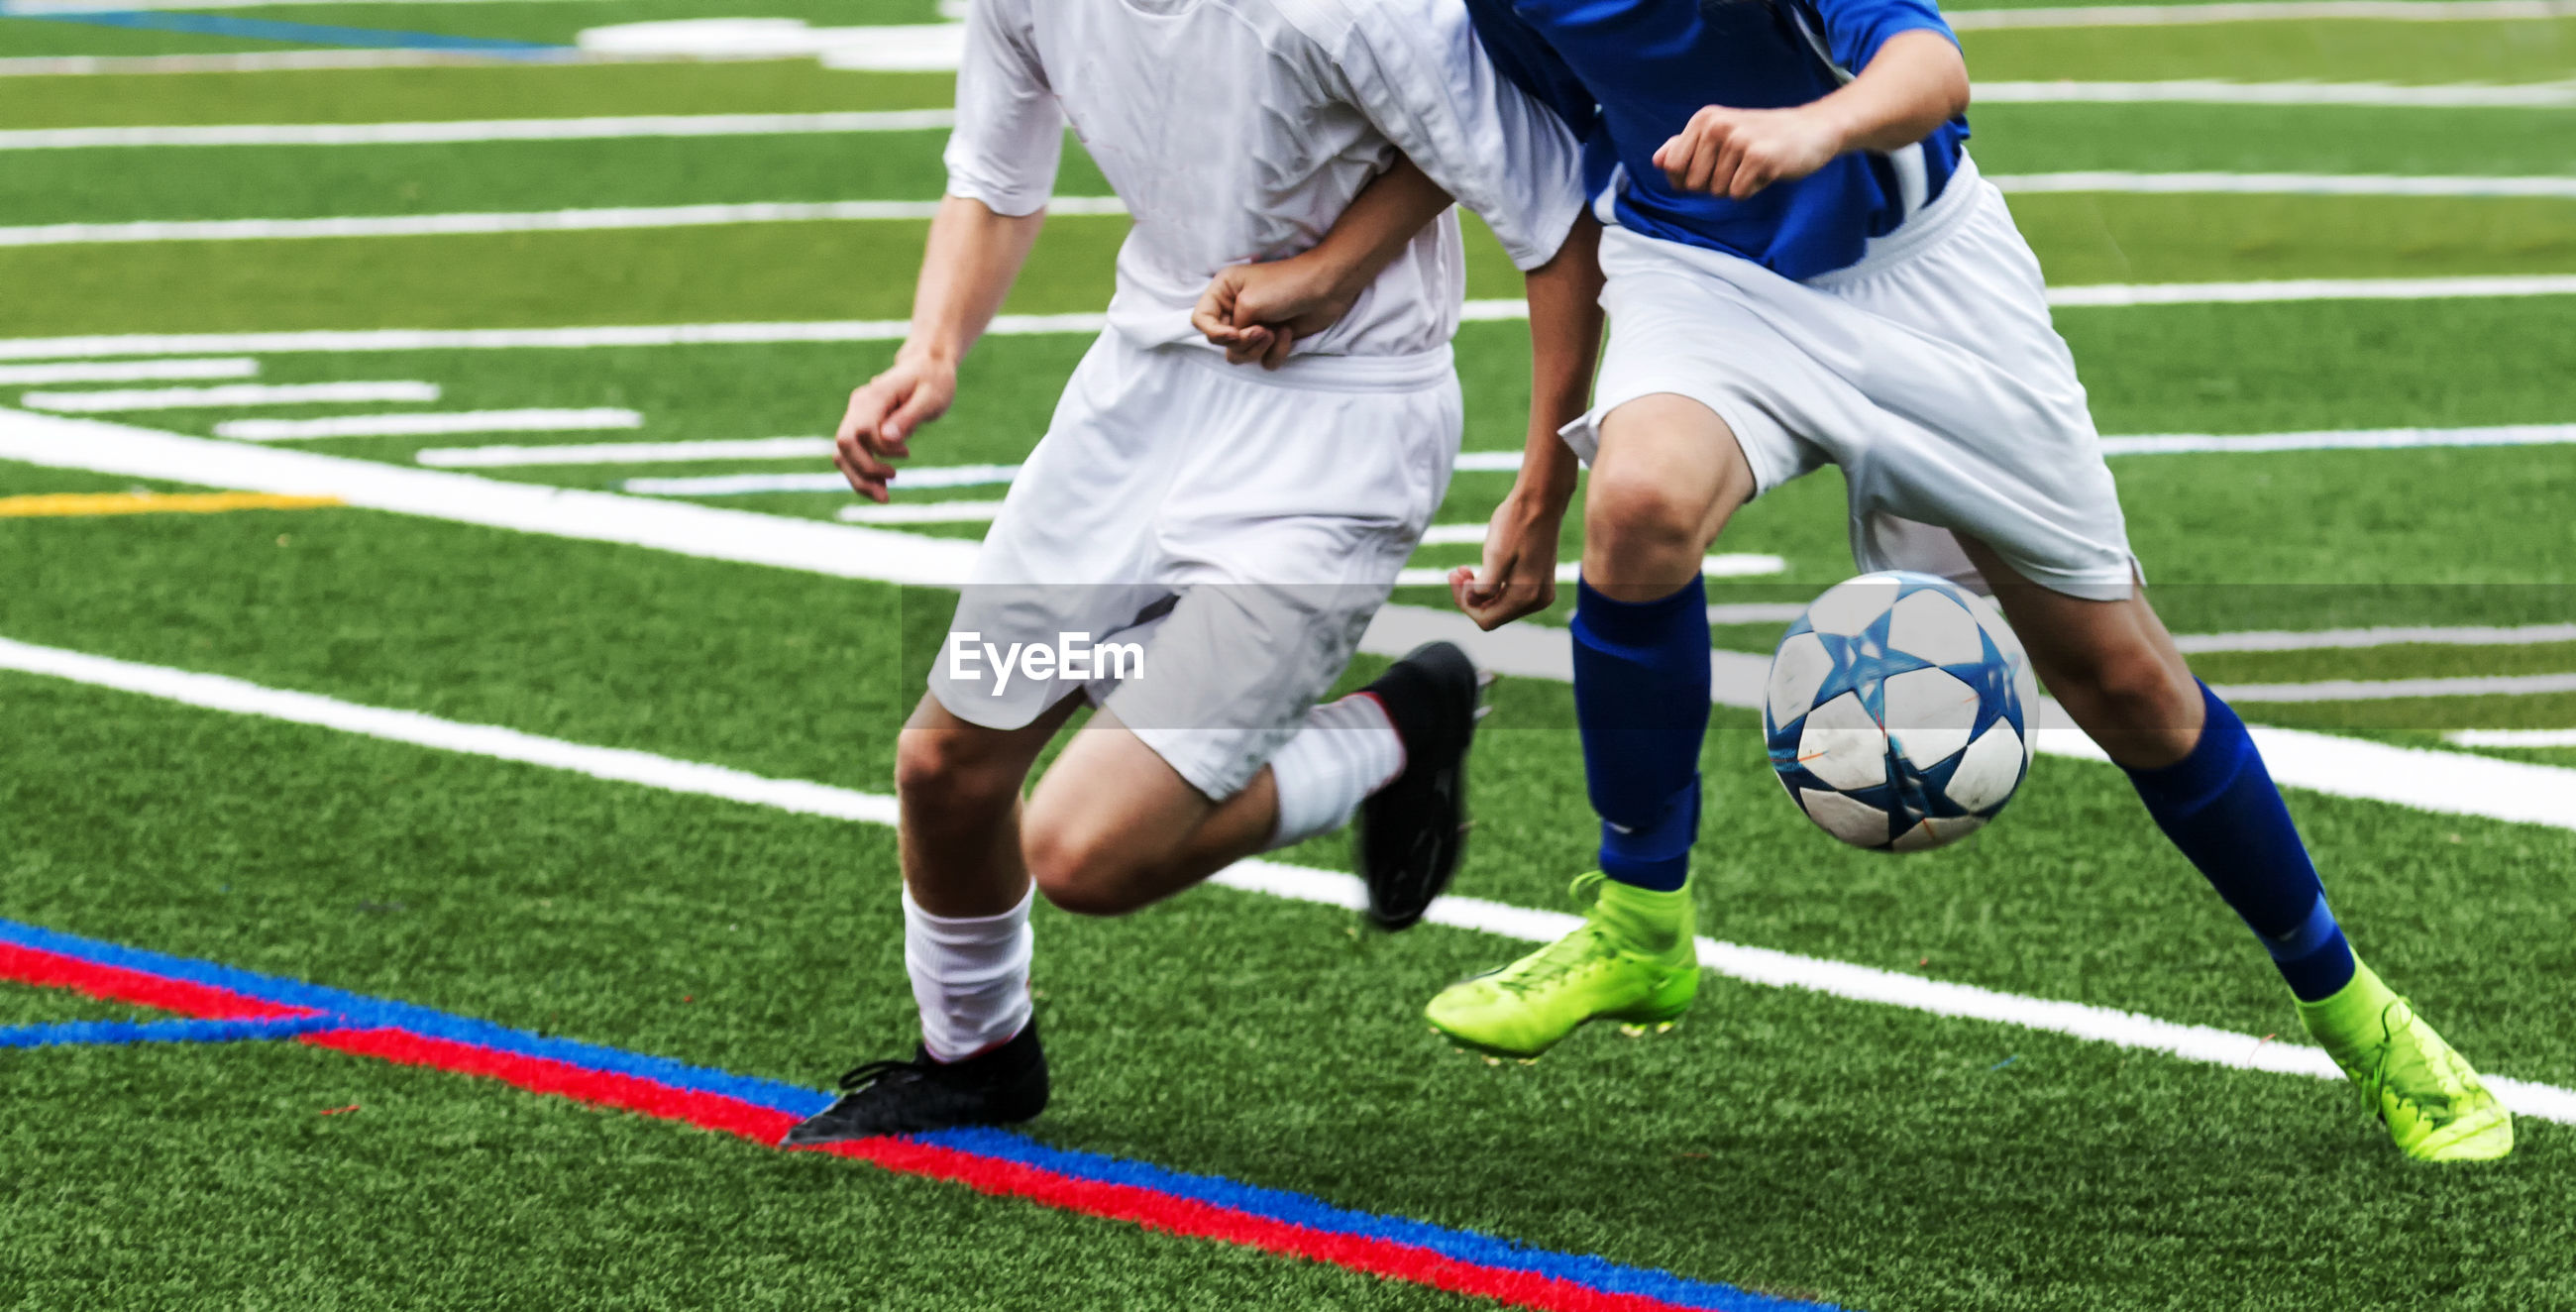 Low section of players playing soccer